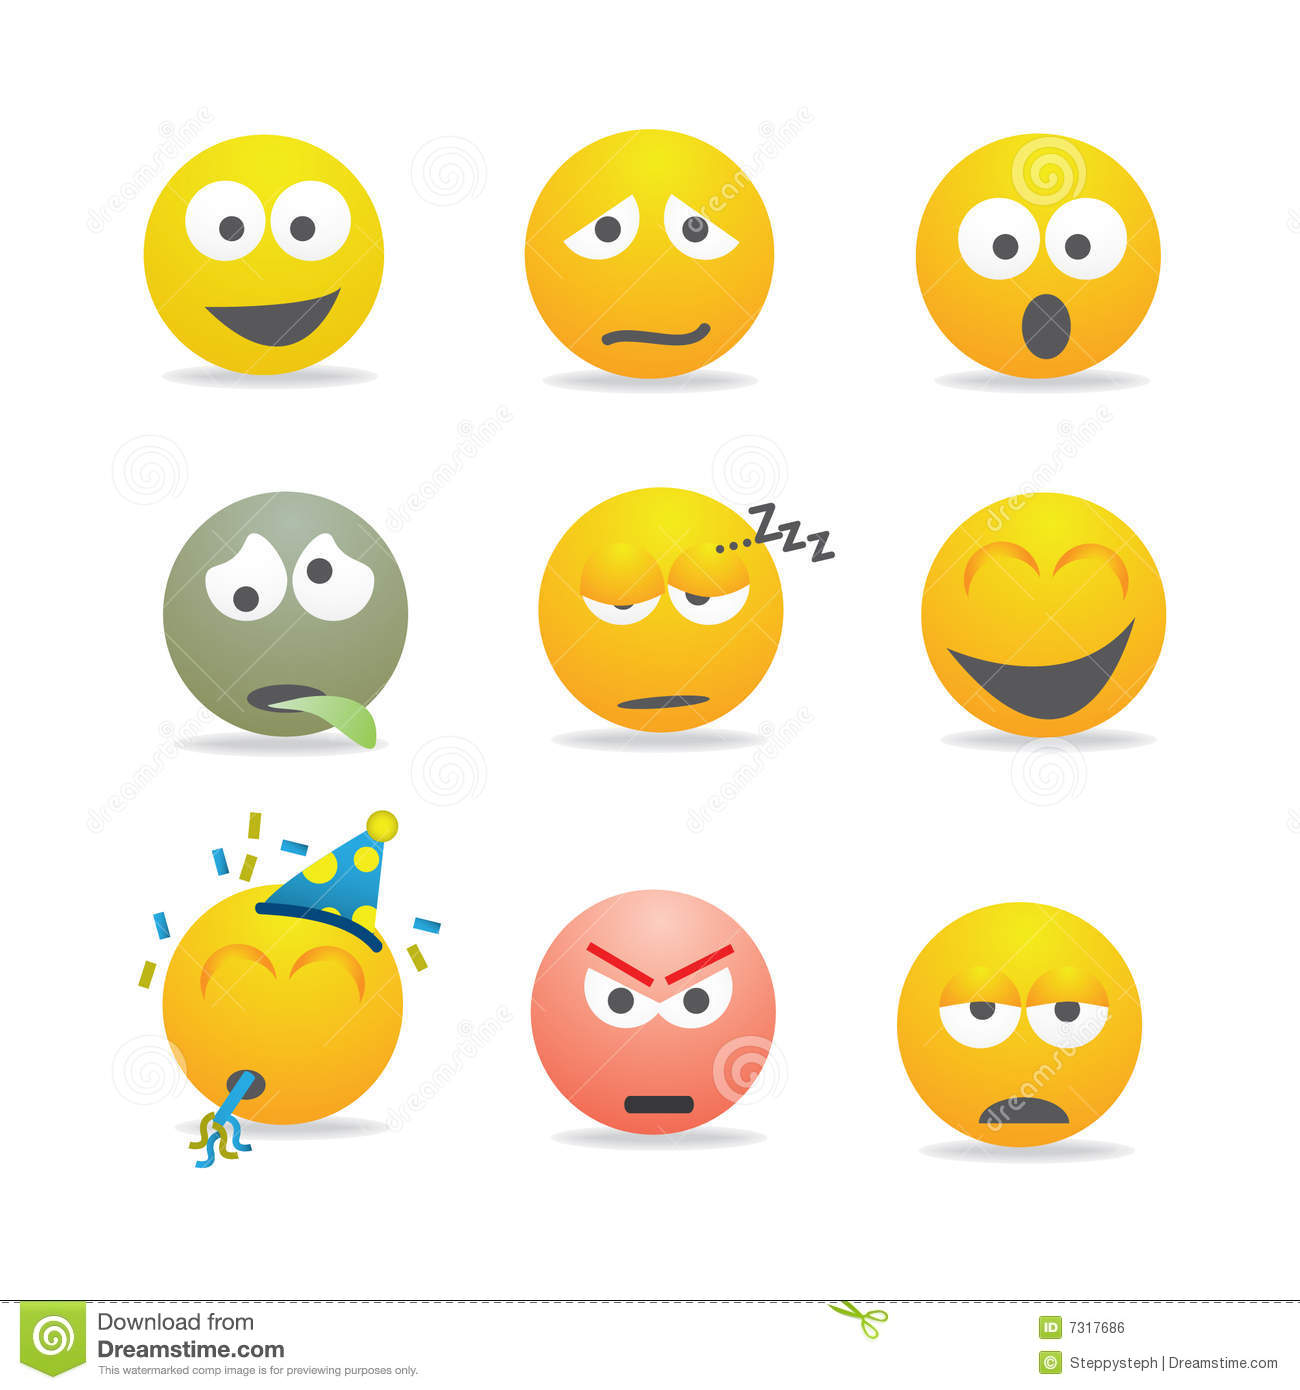 Smilies Royalty Free Stock Image - Image: 7317686: www.dreamstime.com/royalty-free-stock-image-smilies-image7317686